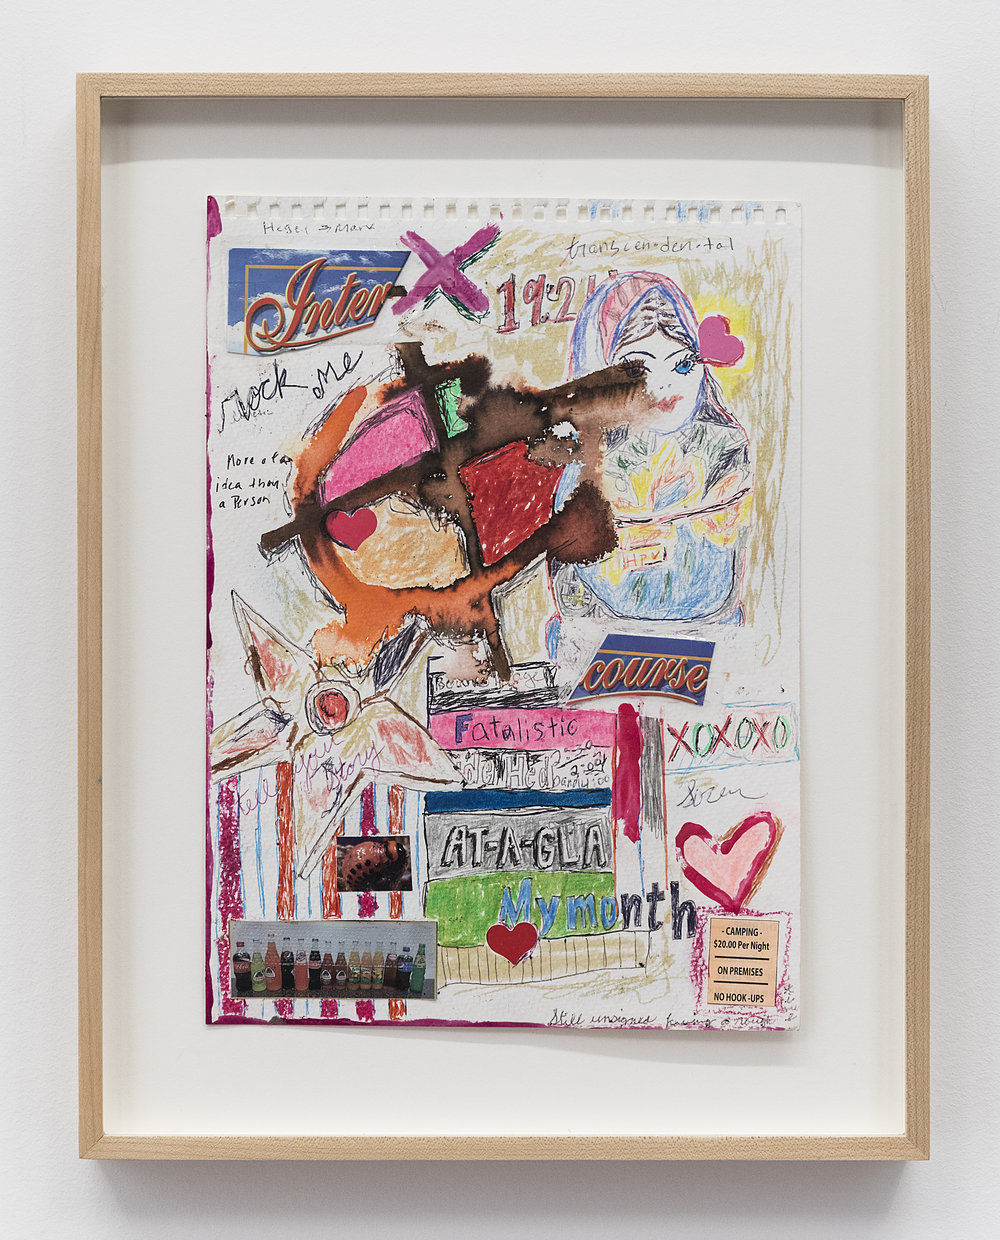 Alicia Gibson  At a Glance  2017 Mixed media on paper 12 1/4 x 9 inches